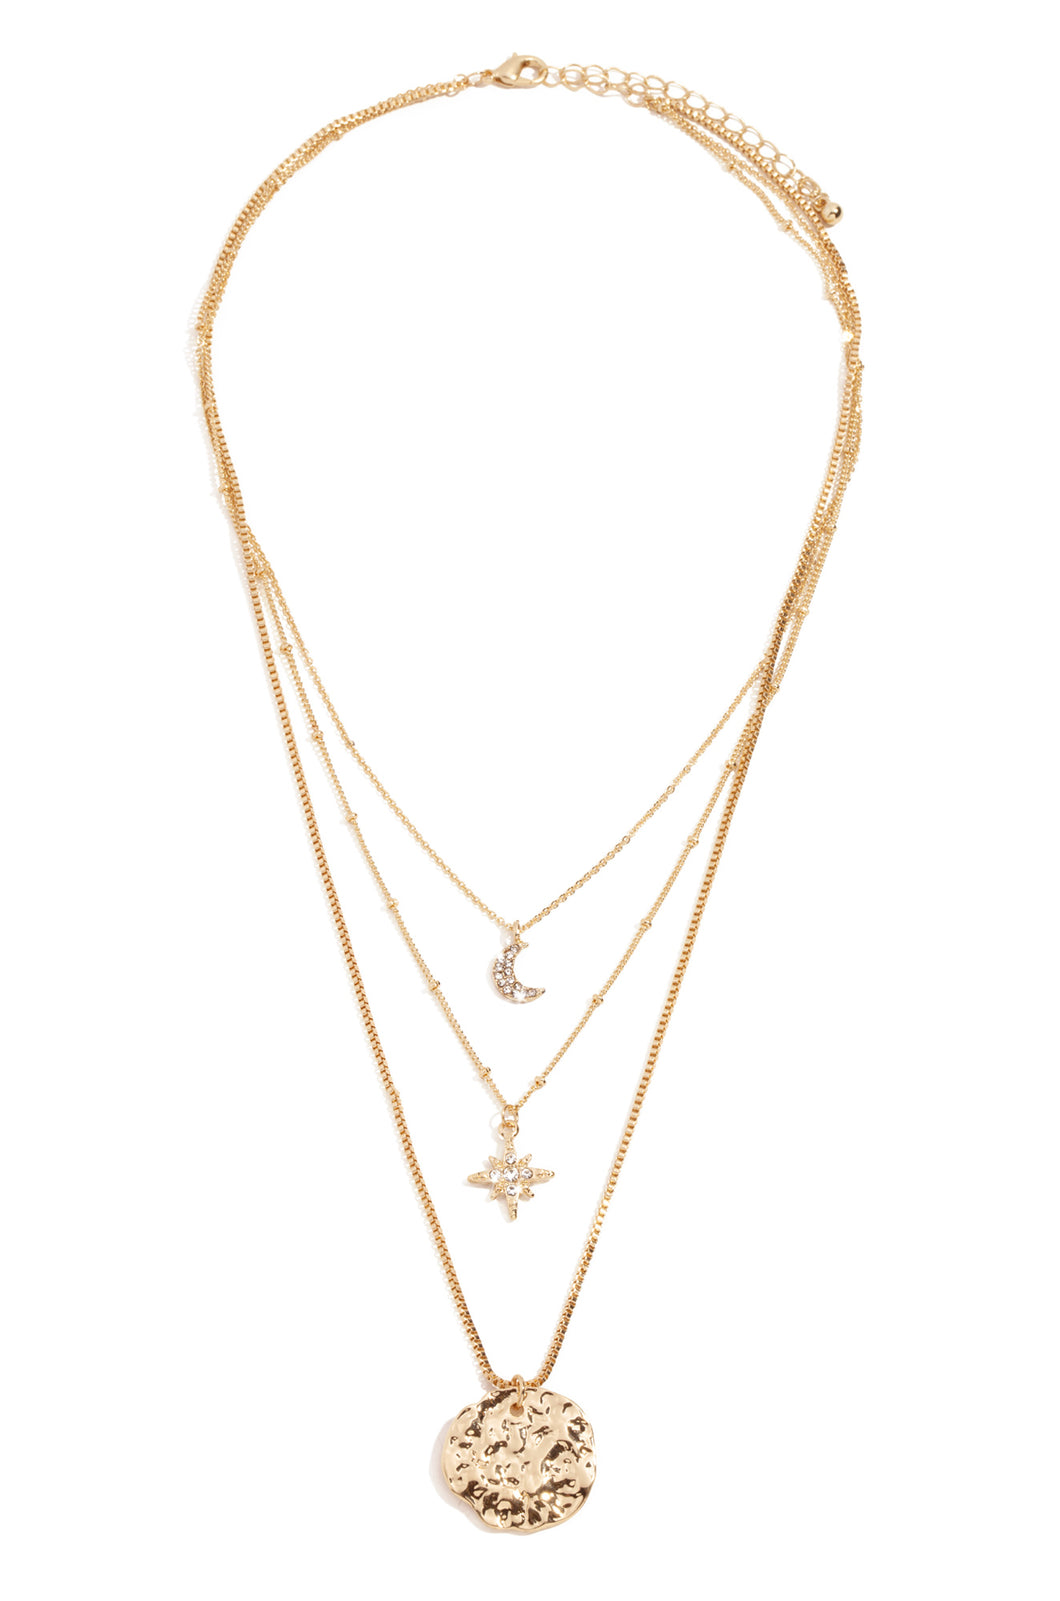 All The Stars Necklace - Gold